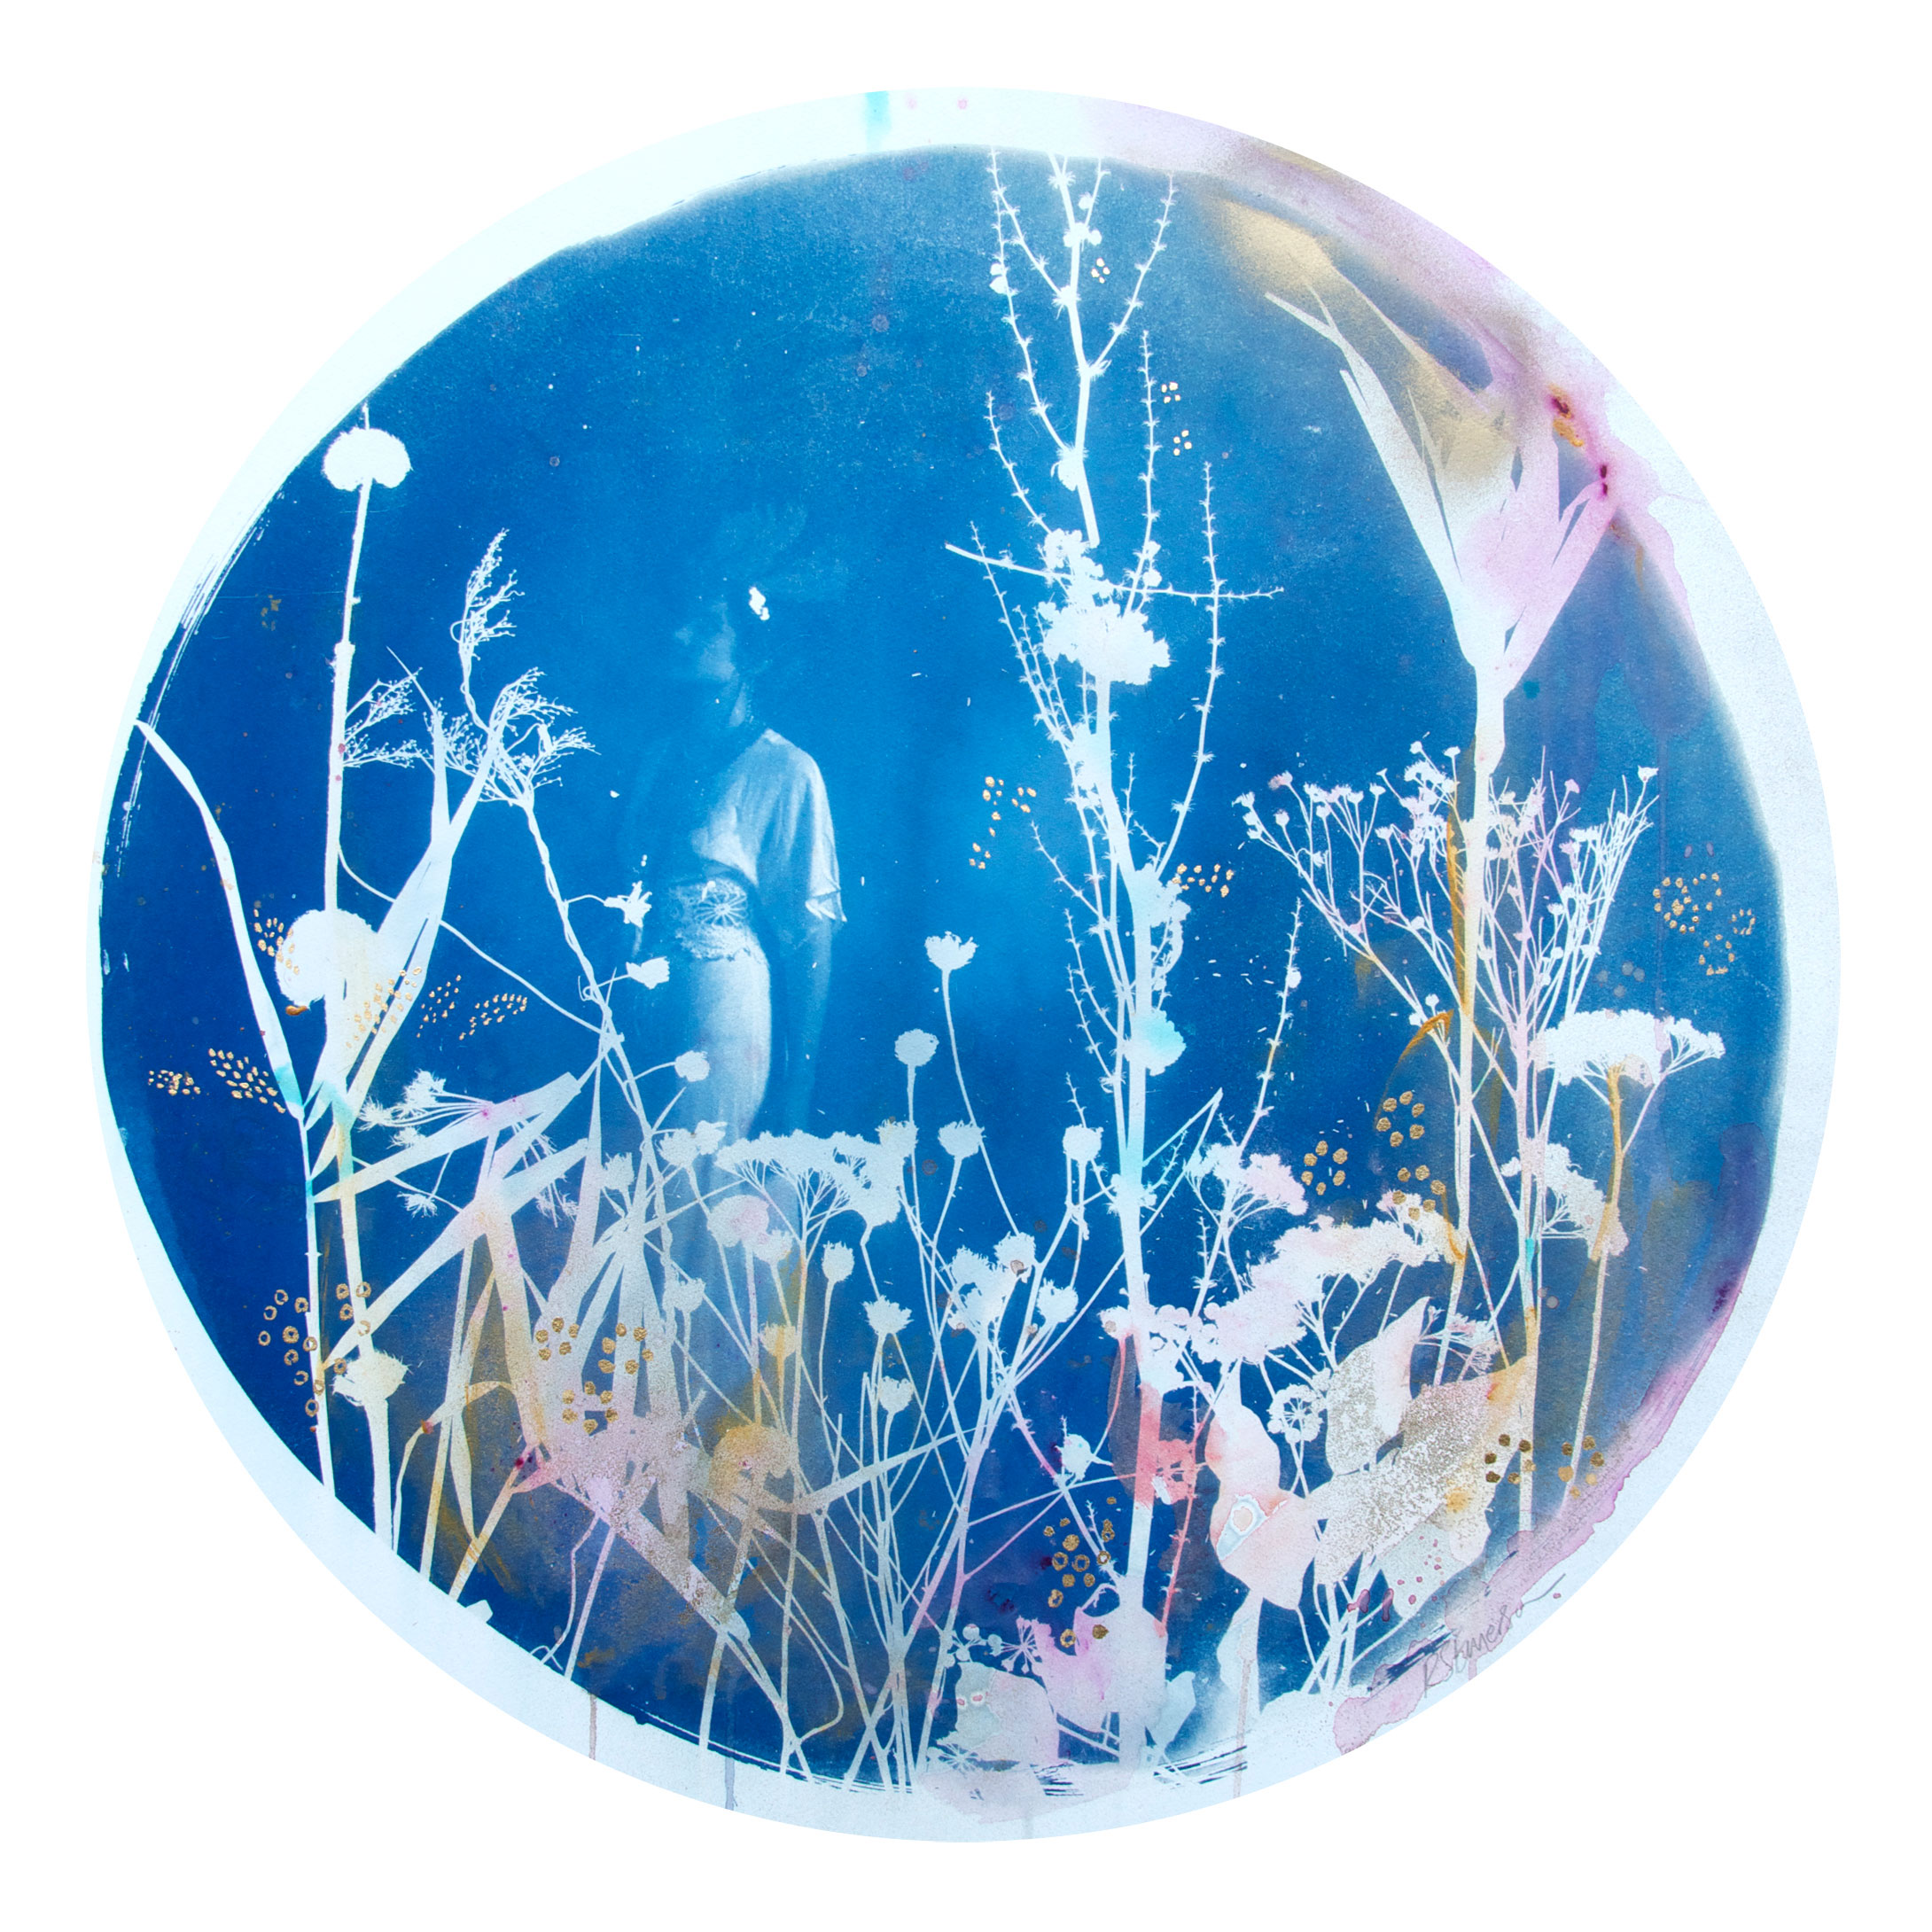 Under the Harvest Moon  - 2015 - Original hand painted Cyanotype on Somerset Satin 300 gram printmaking paper, bespoke circular white frame with convex dome Artwork: 30 inches / 70 cm diameter